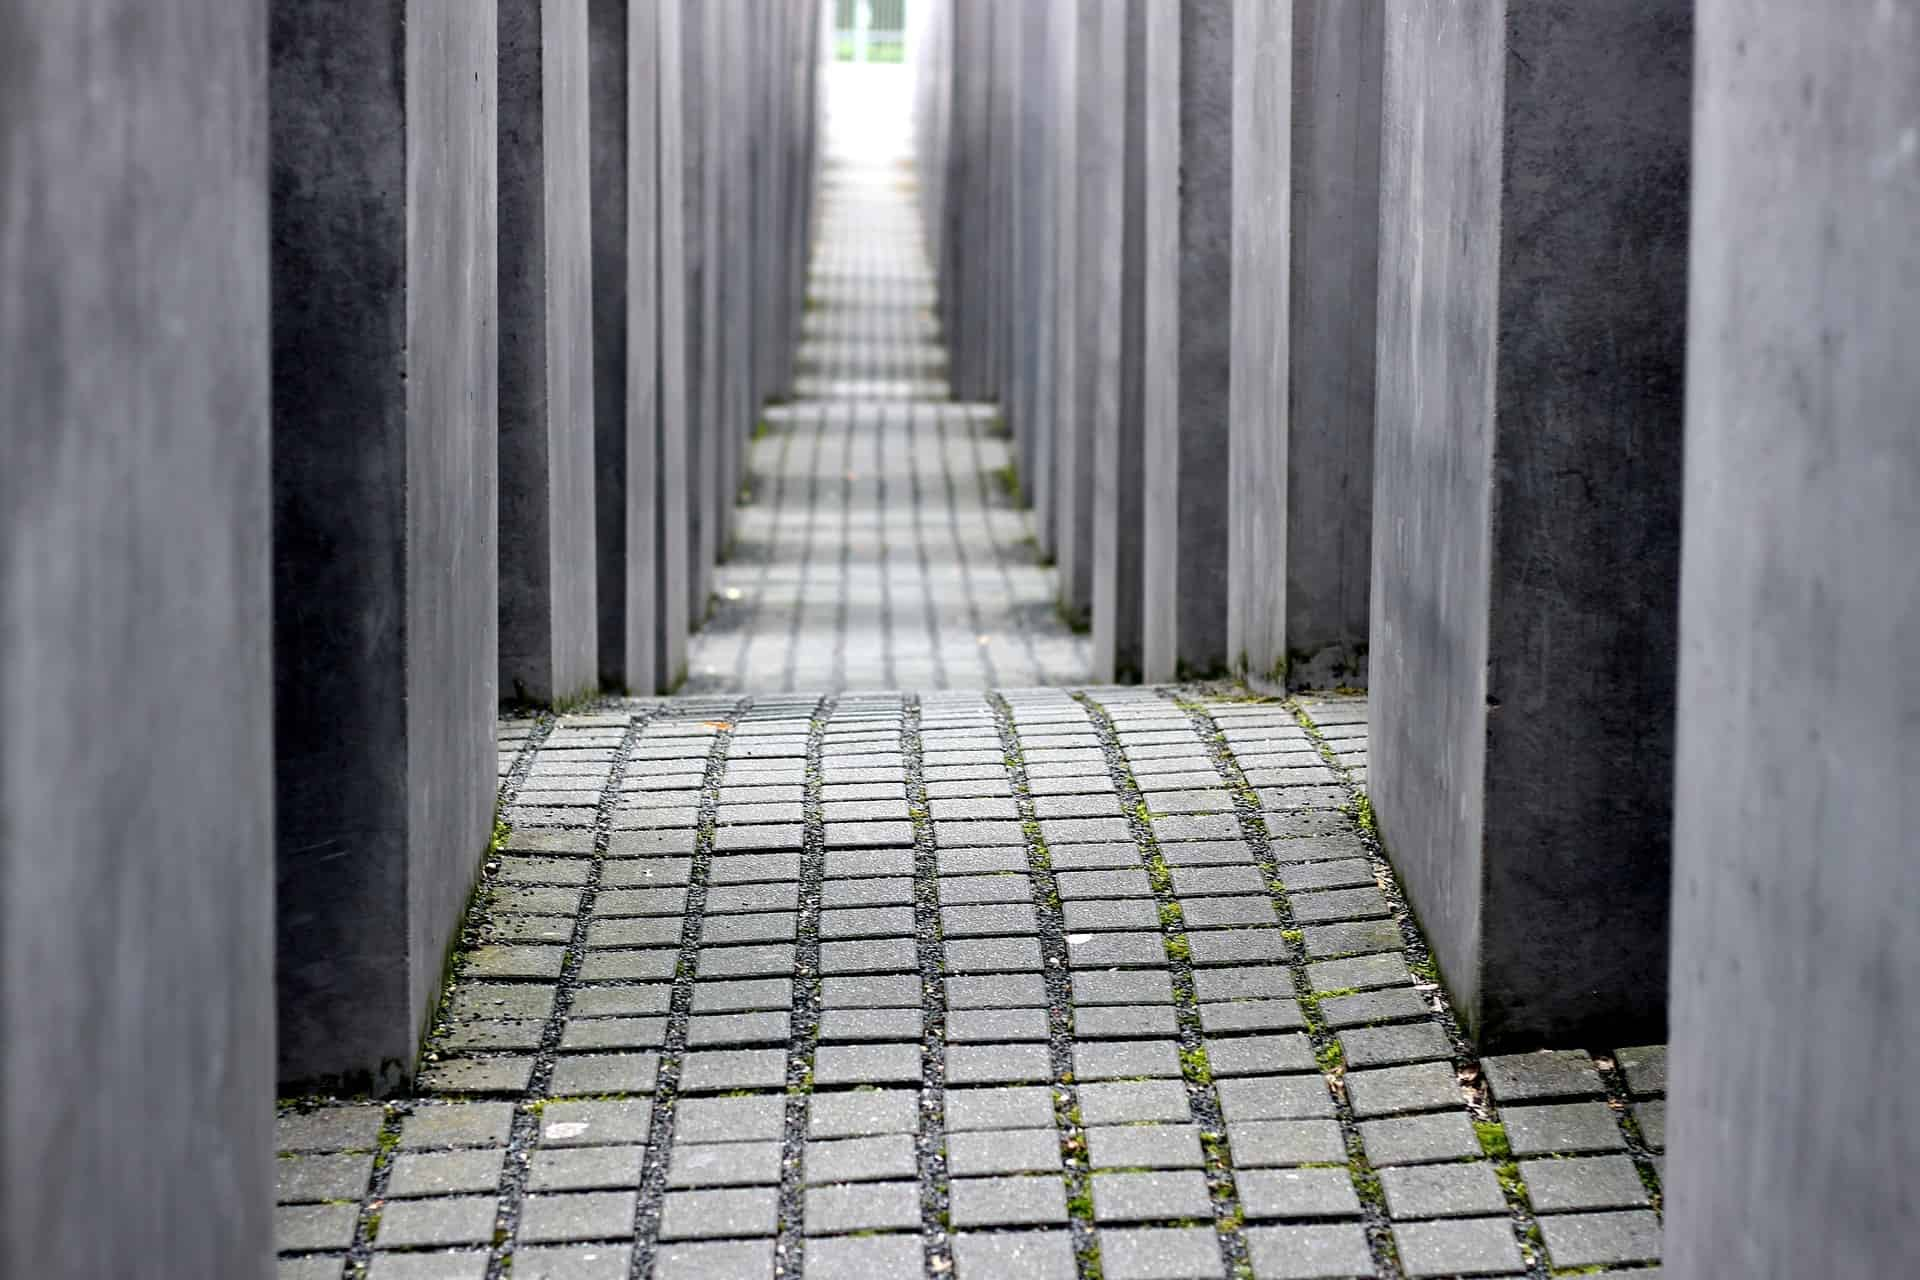 Monument en mémoire des juifs assassinés, Berlin. (Photo: Pixabay - CC)